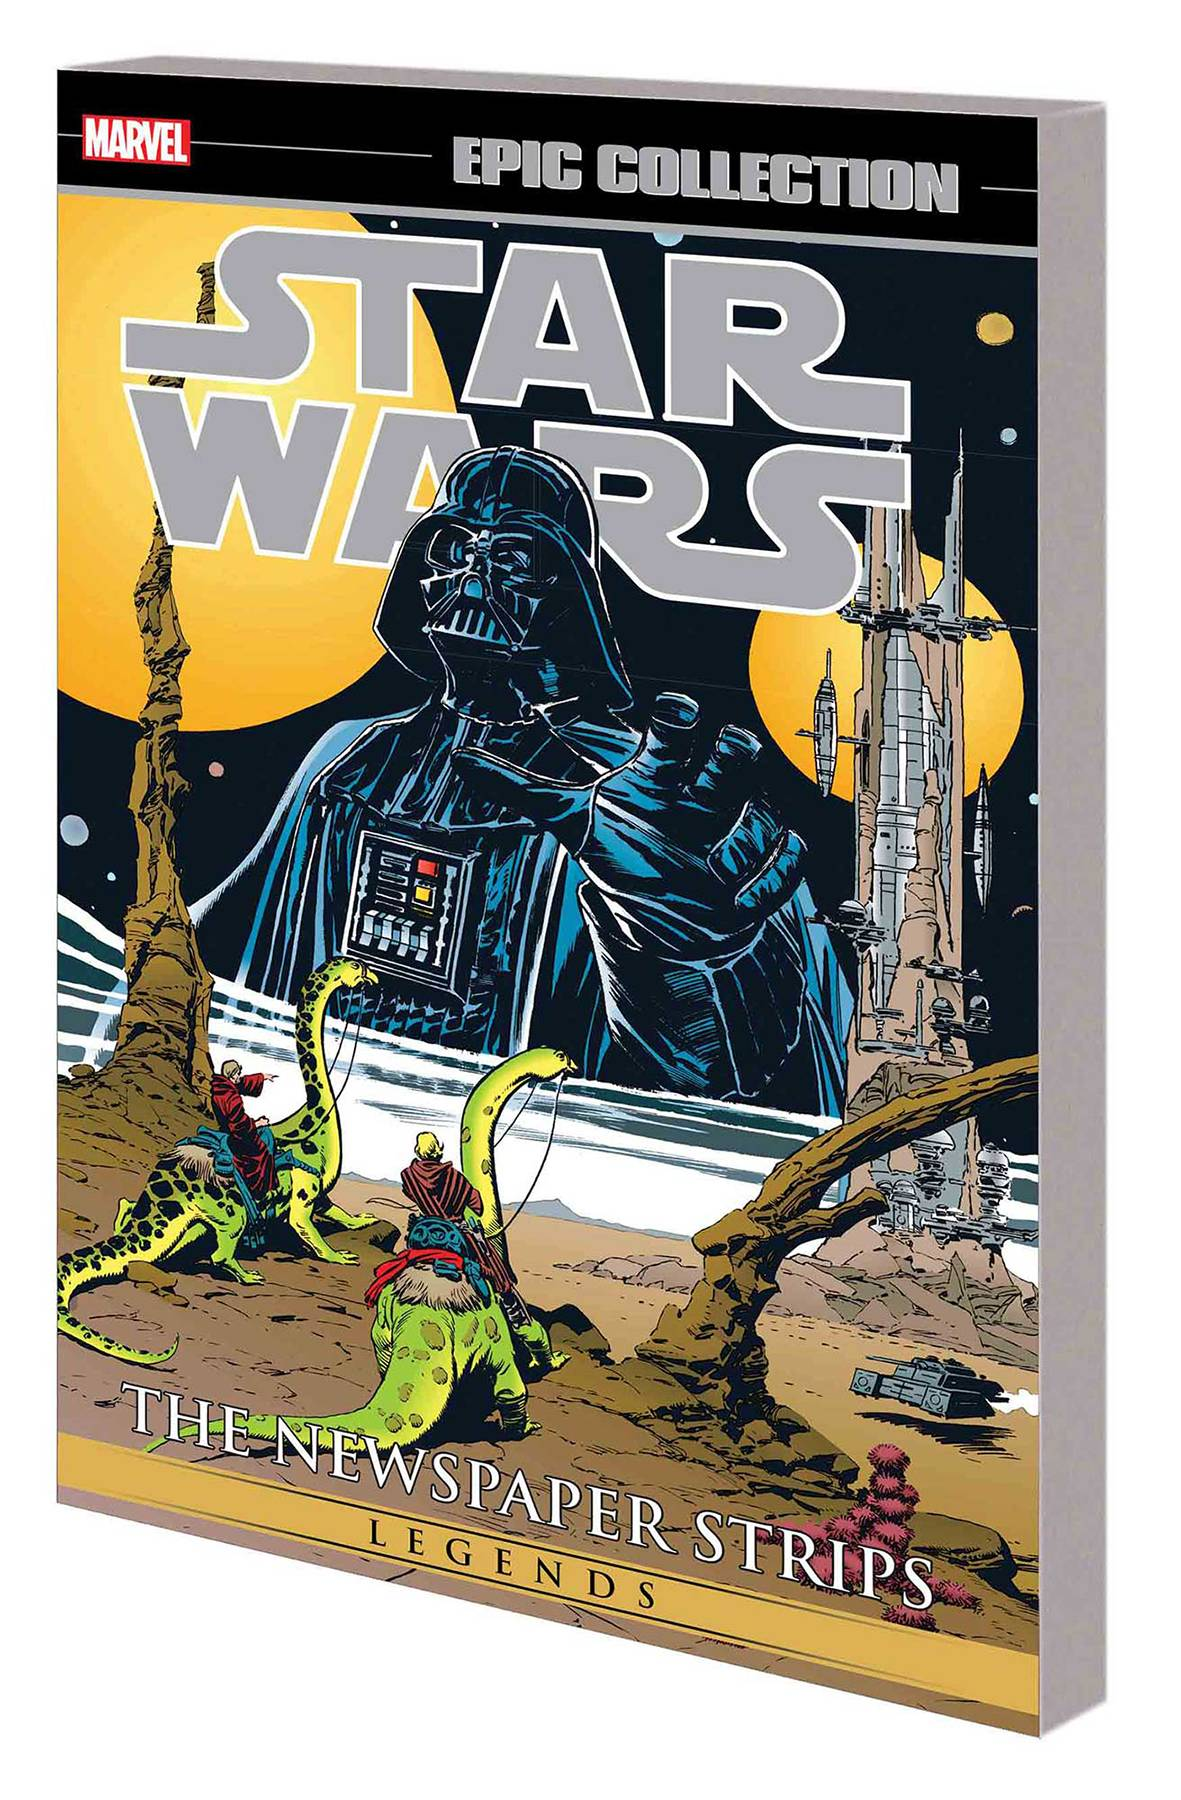 STAR WARS LEGENDS EPIC COLLECTION NEWSPAPER STRIPS TP VOL 02